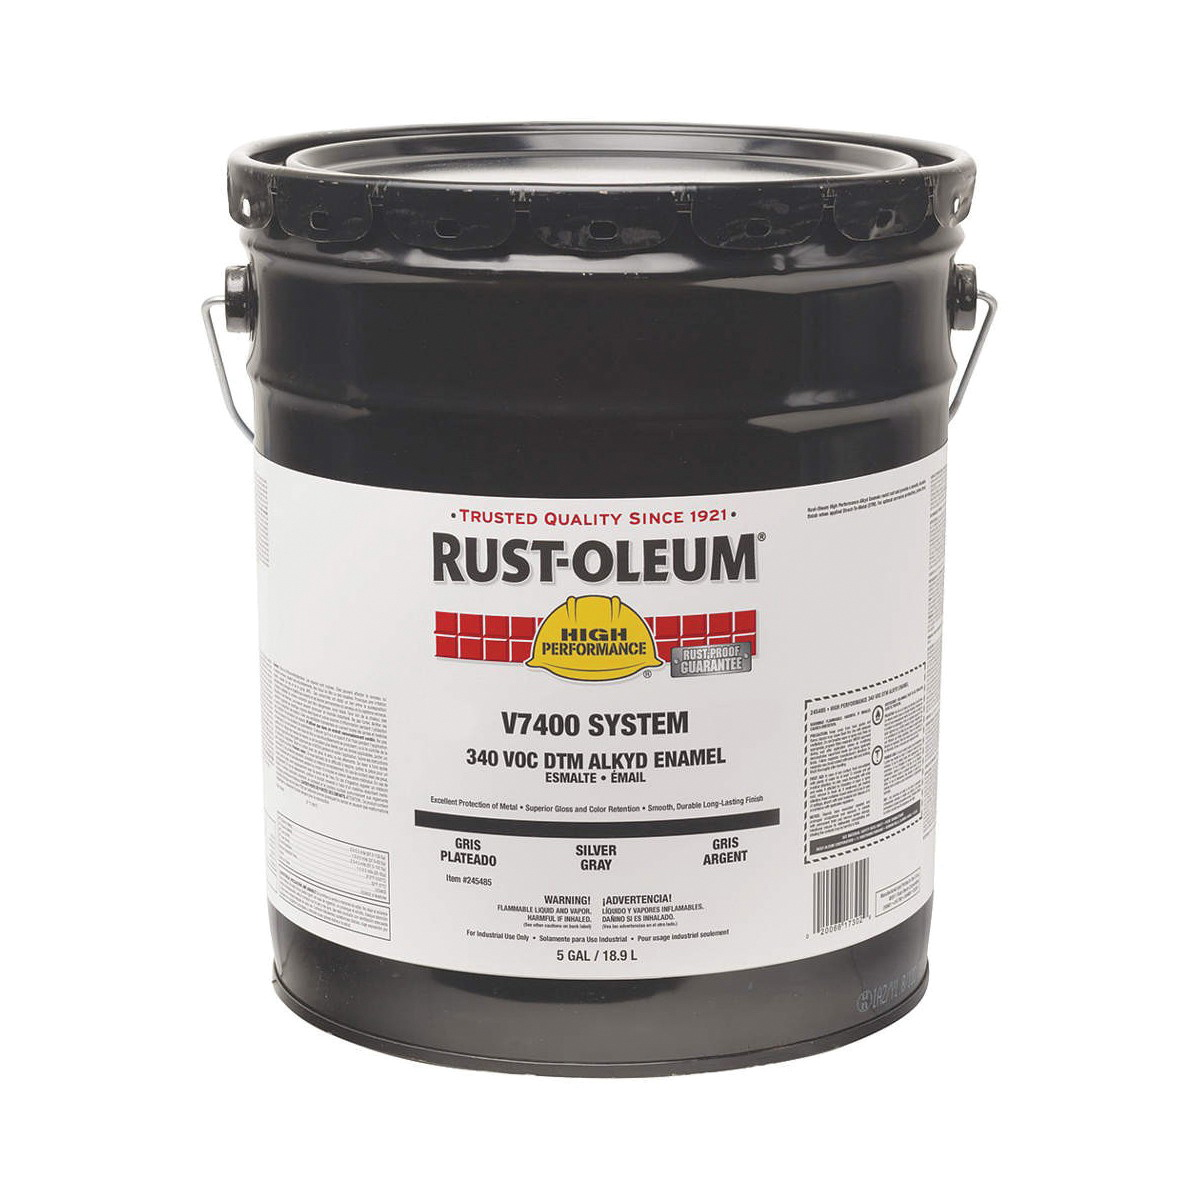 Rust-Oleum® 7086300 7400 System 1-Component Industrial Quick-Dry Enamel Primer, 5 gal Container, Liquid Form, Gray, 230 to 390 sq-ft/gal Coverage